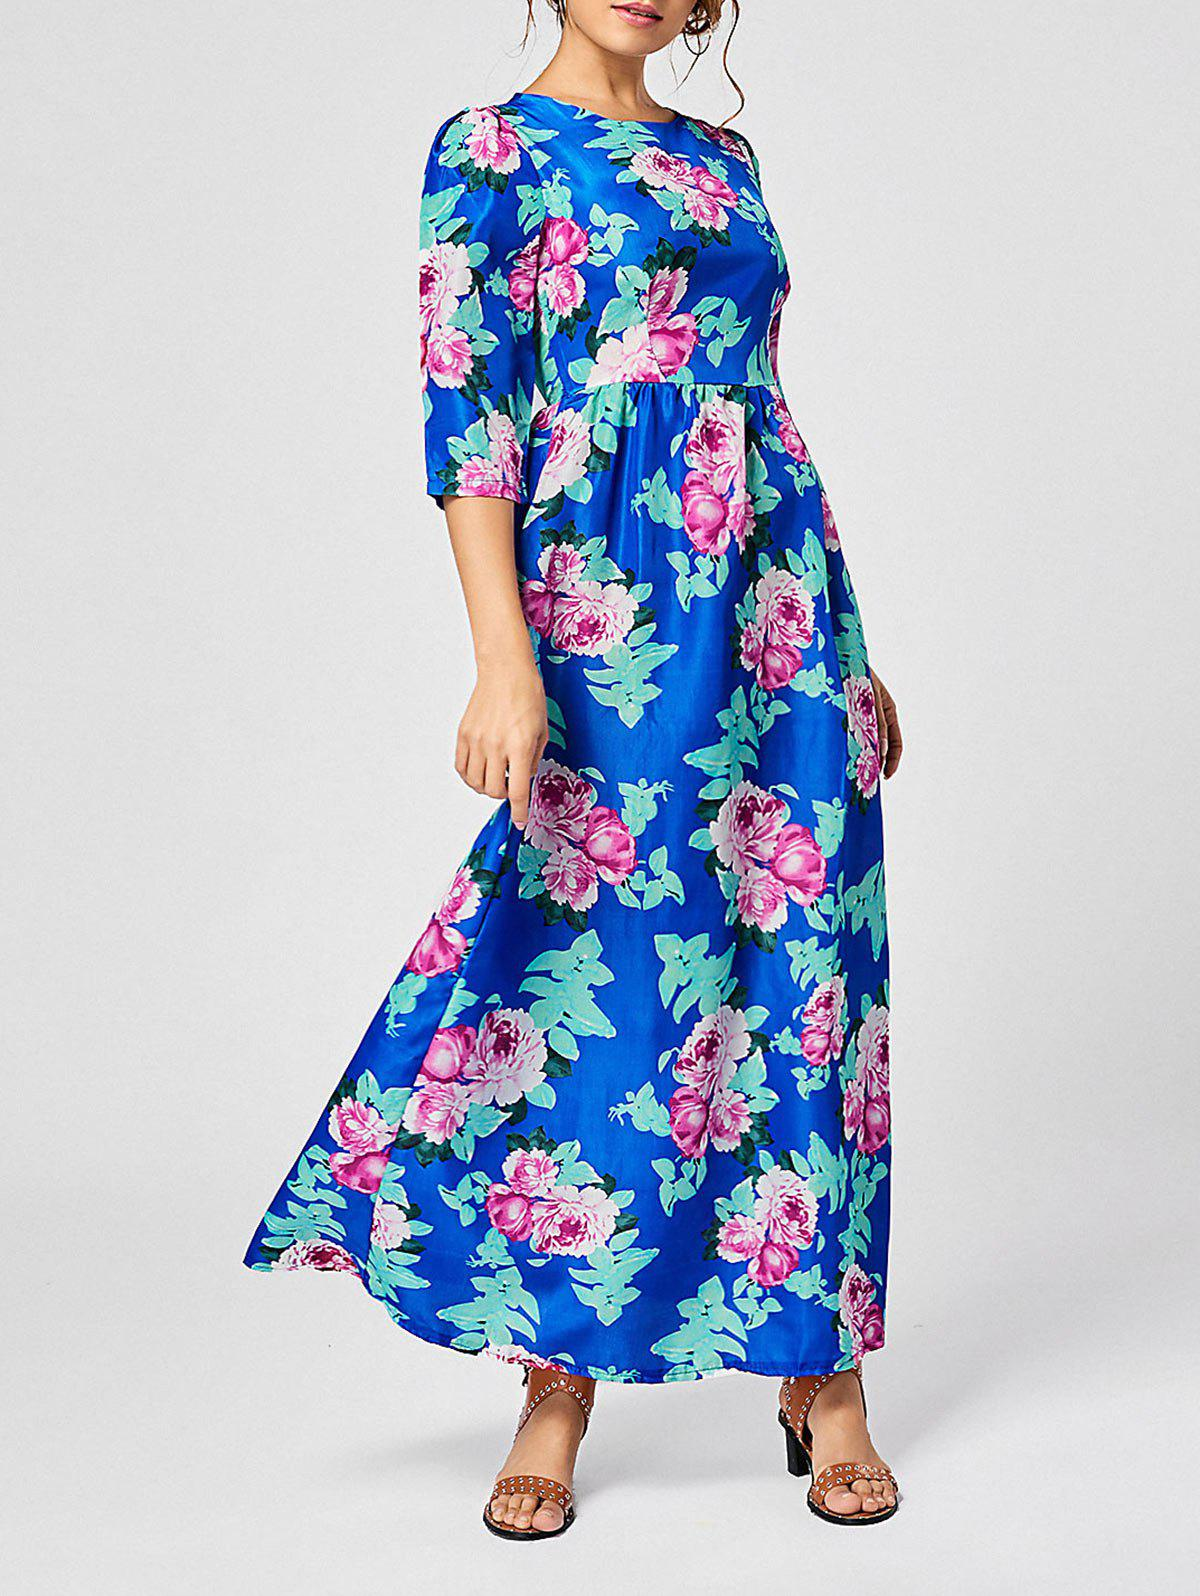 Bohemian Floral Print Maxi Long Dress - BLUE S